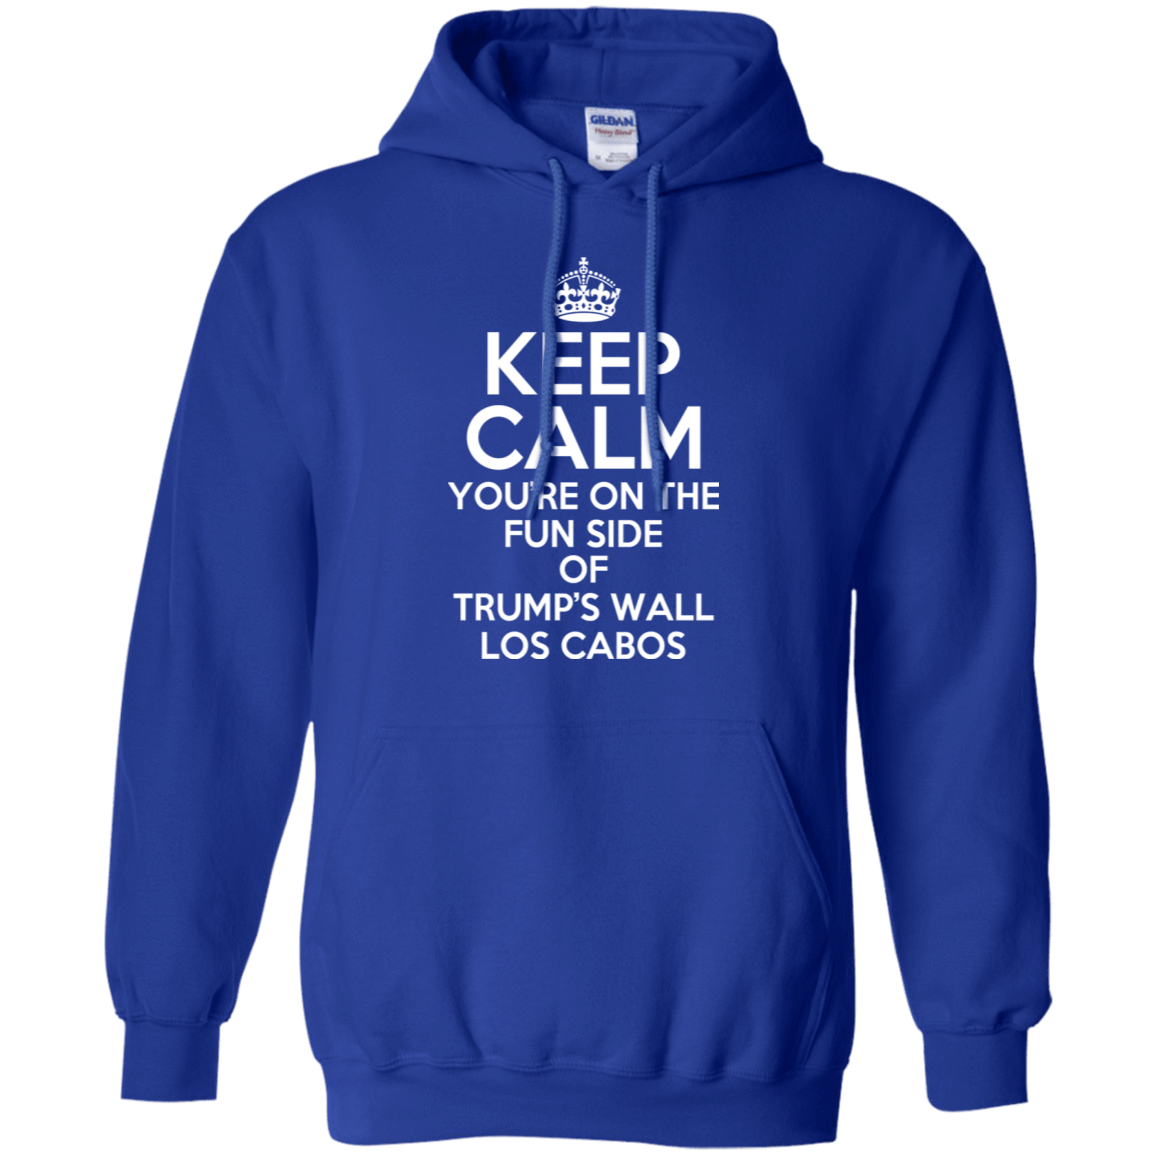 Keep Calm You're On The Fun Side Of Trump's Wall Los Cabos T-Shirts & Hoodies 541-4765-76151288-23175 - Tee Ript